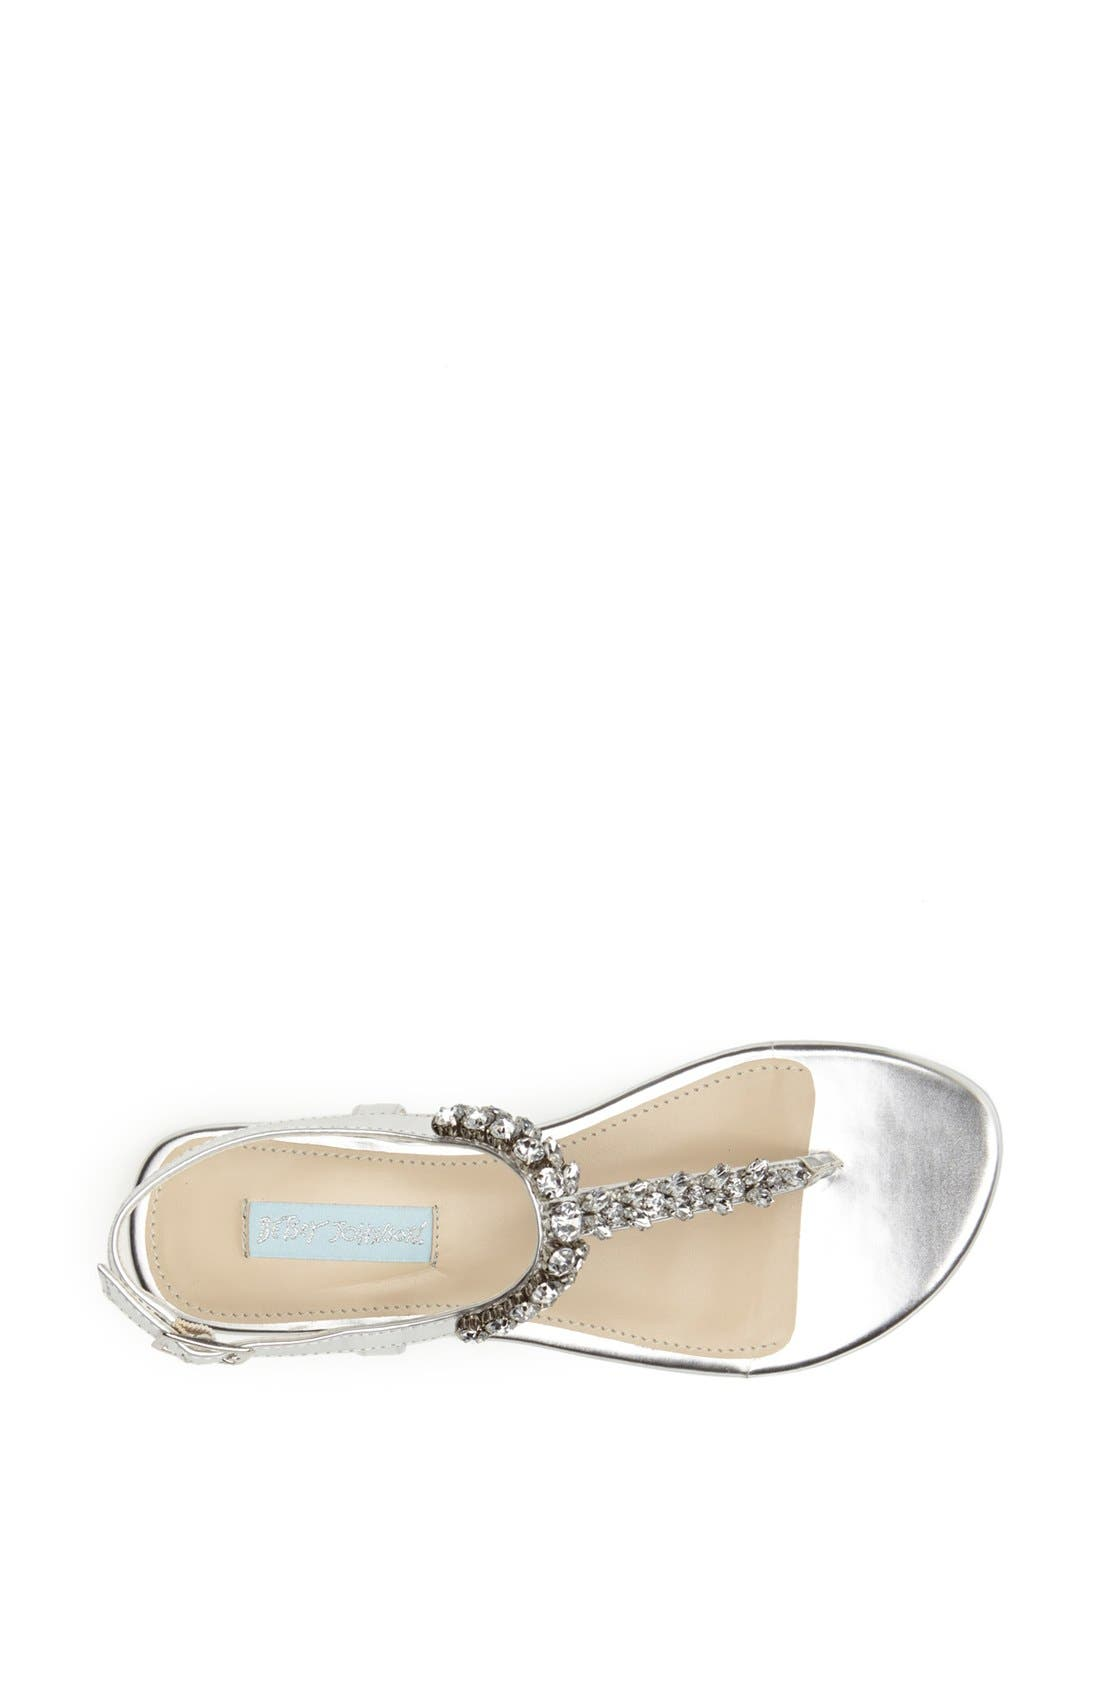 Alternate Image 3  - Blue by Betsey Johnson 'Spark' Crystal Embellished Thong Sandal